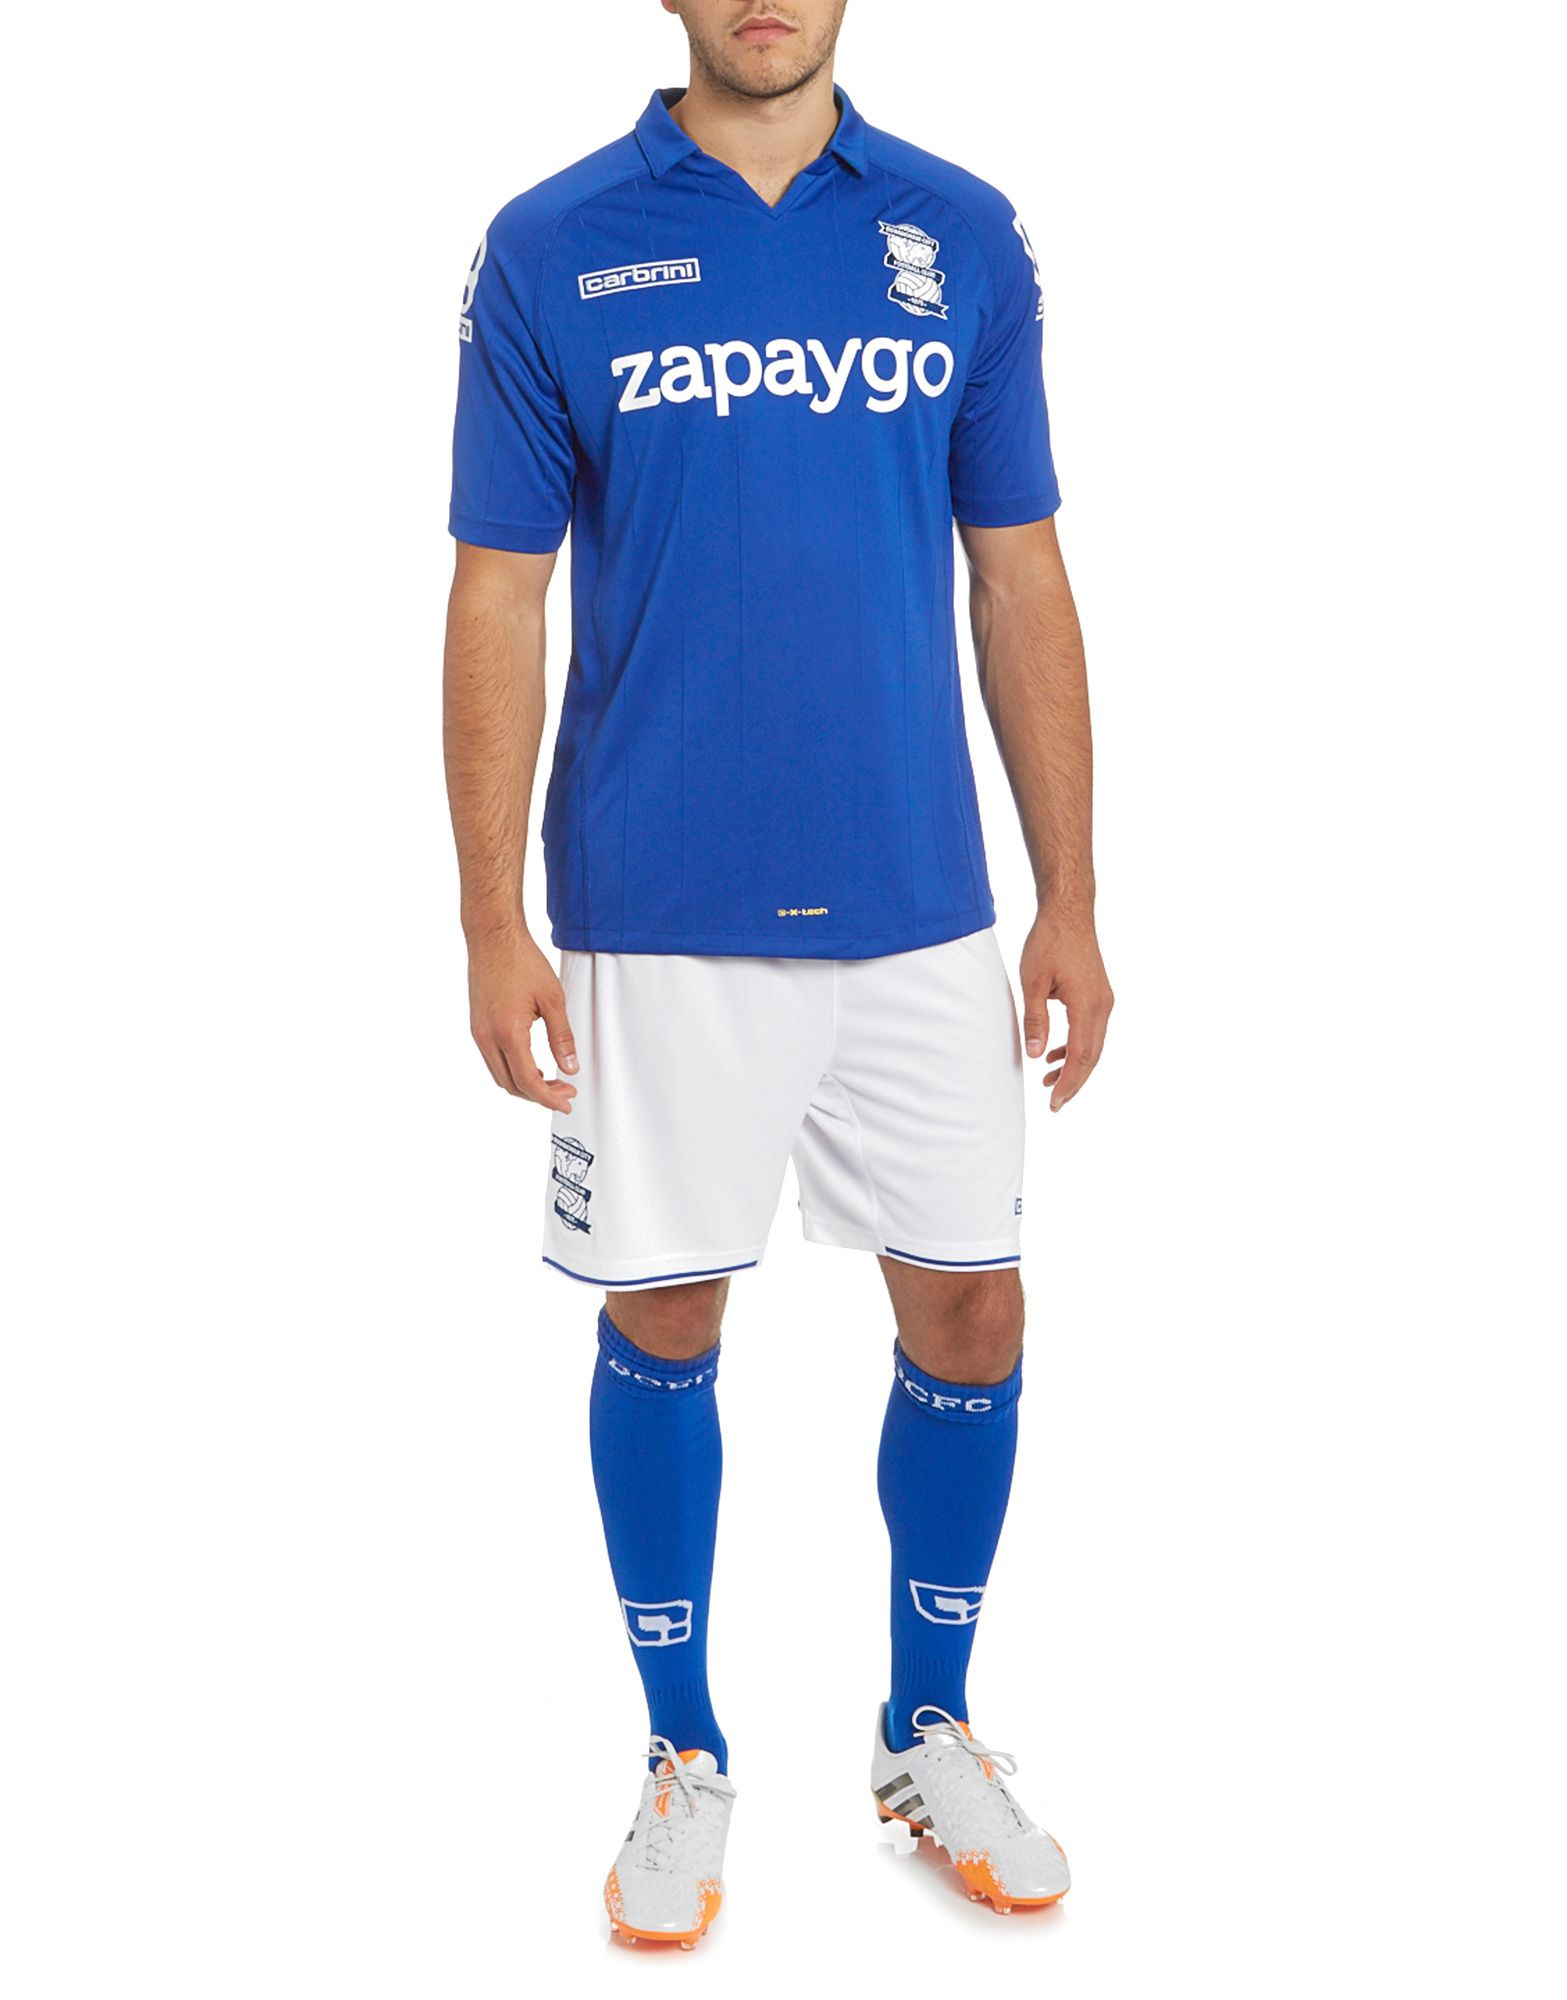 Carbrini Birmingham City FC 2014 Home Shirt